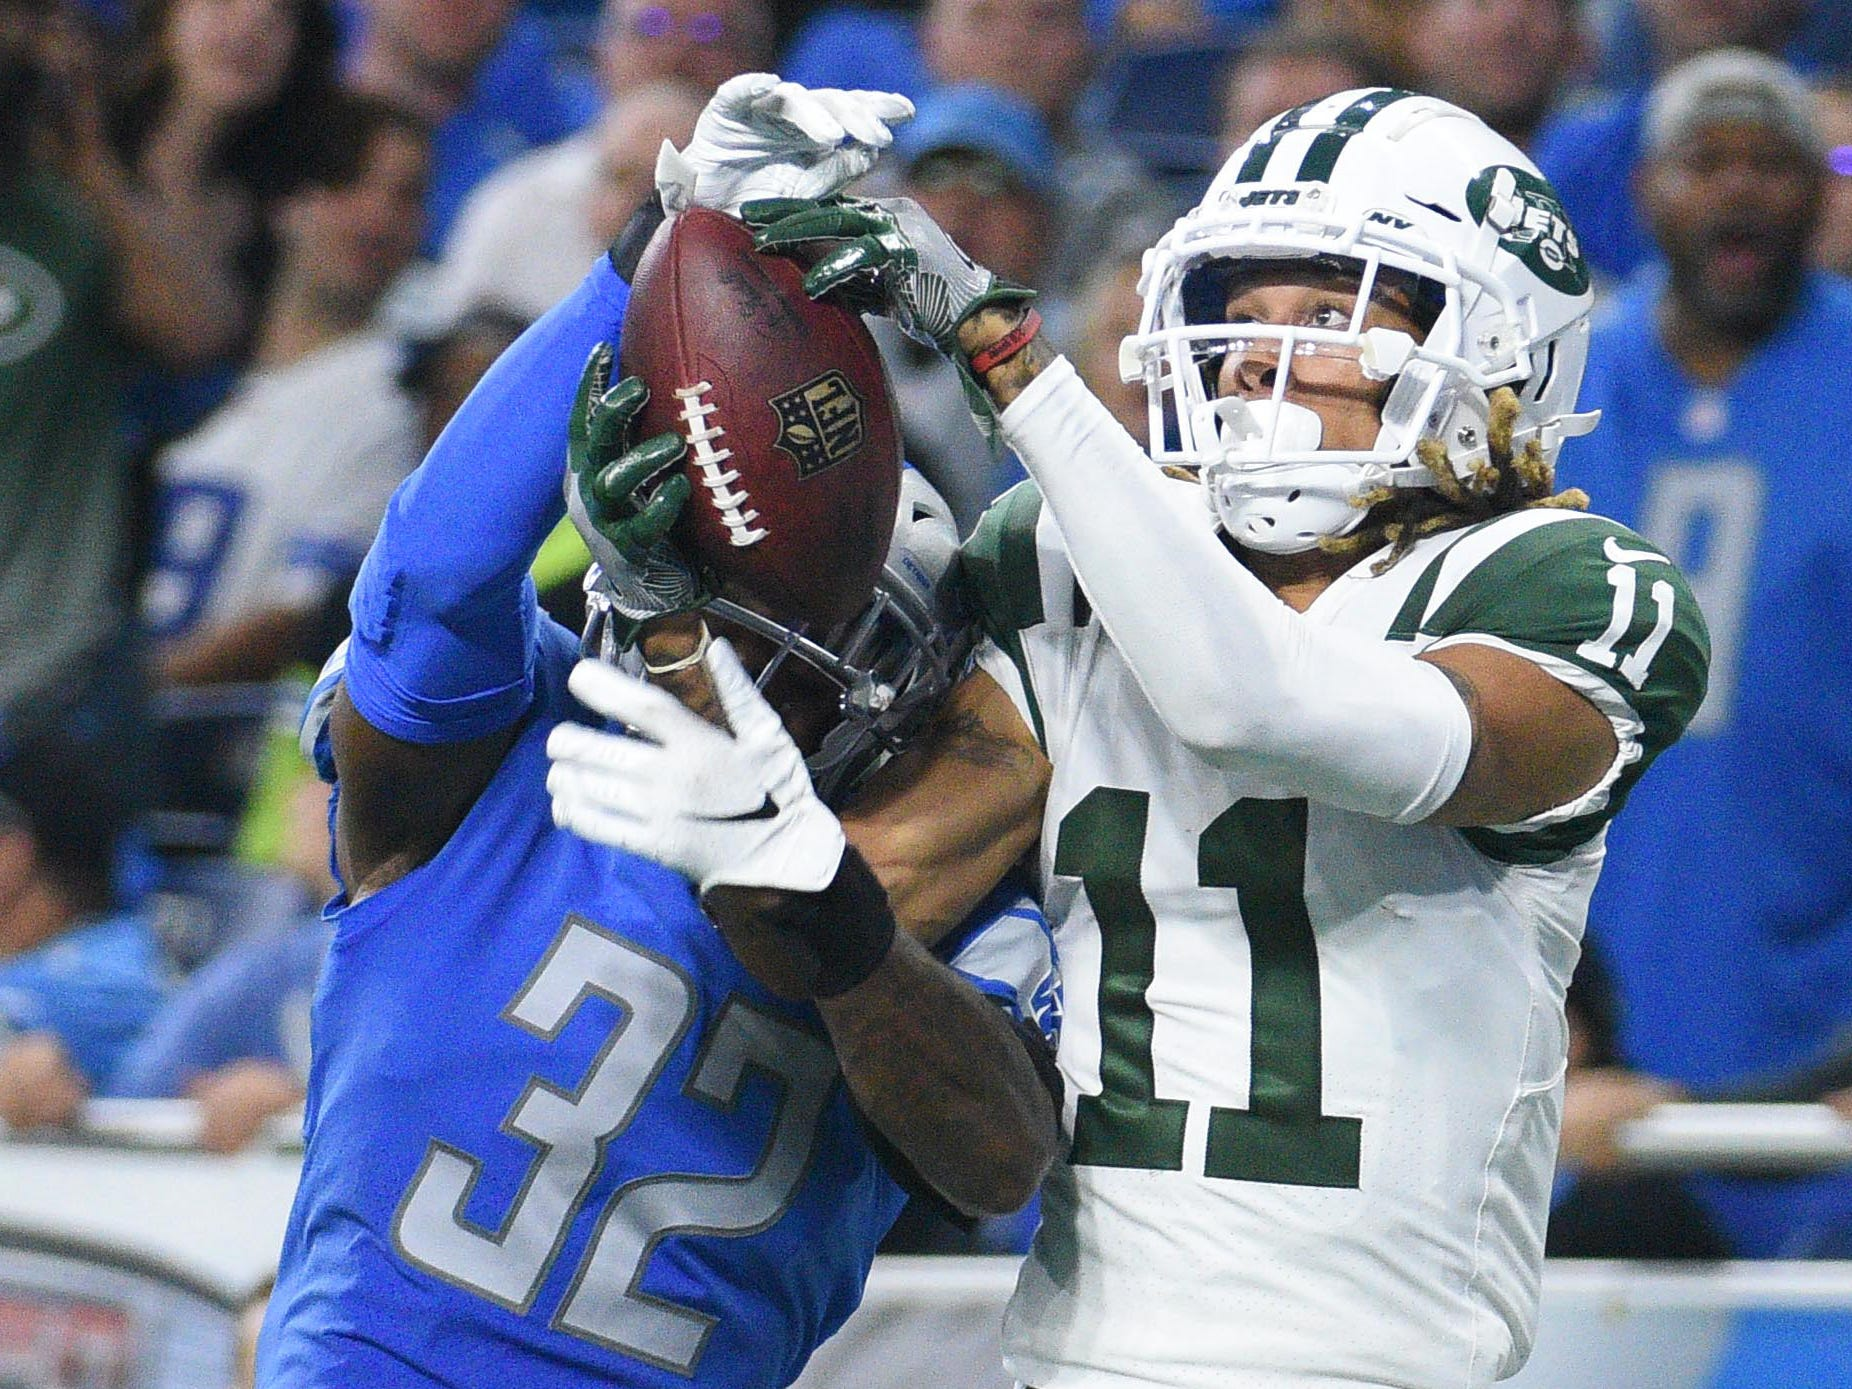 New York Jets wide receiver Robby Anderson catches a pass for a touchdown as Detroit Lions defensive back Tavon Wilson defends during the second quarter at Ford Field.